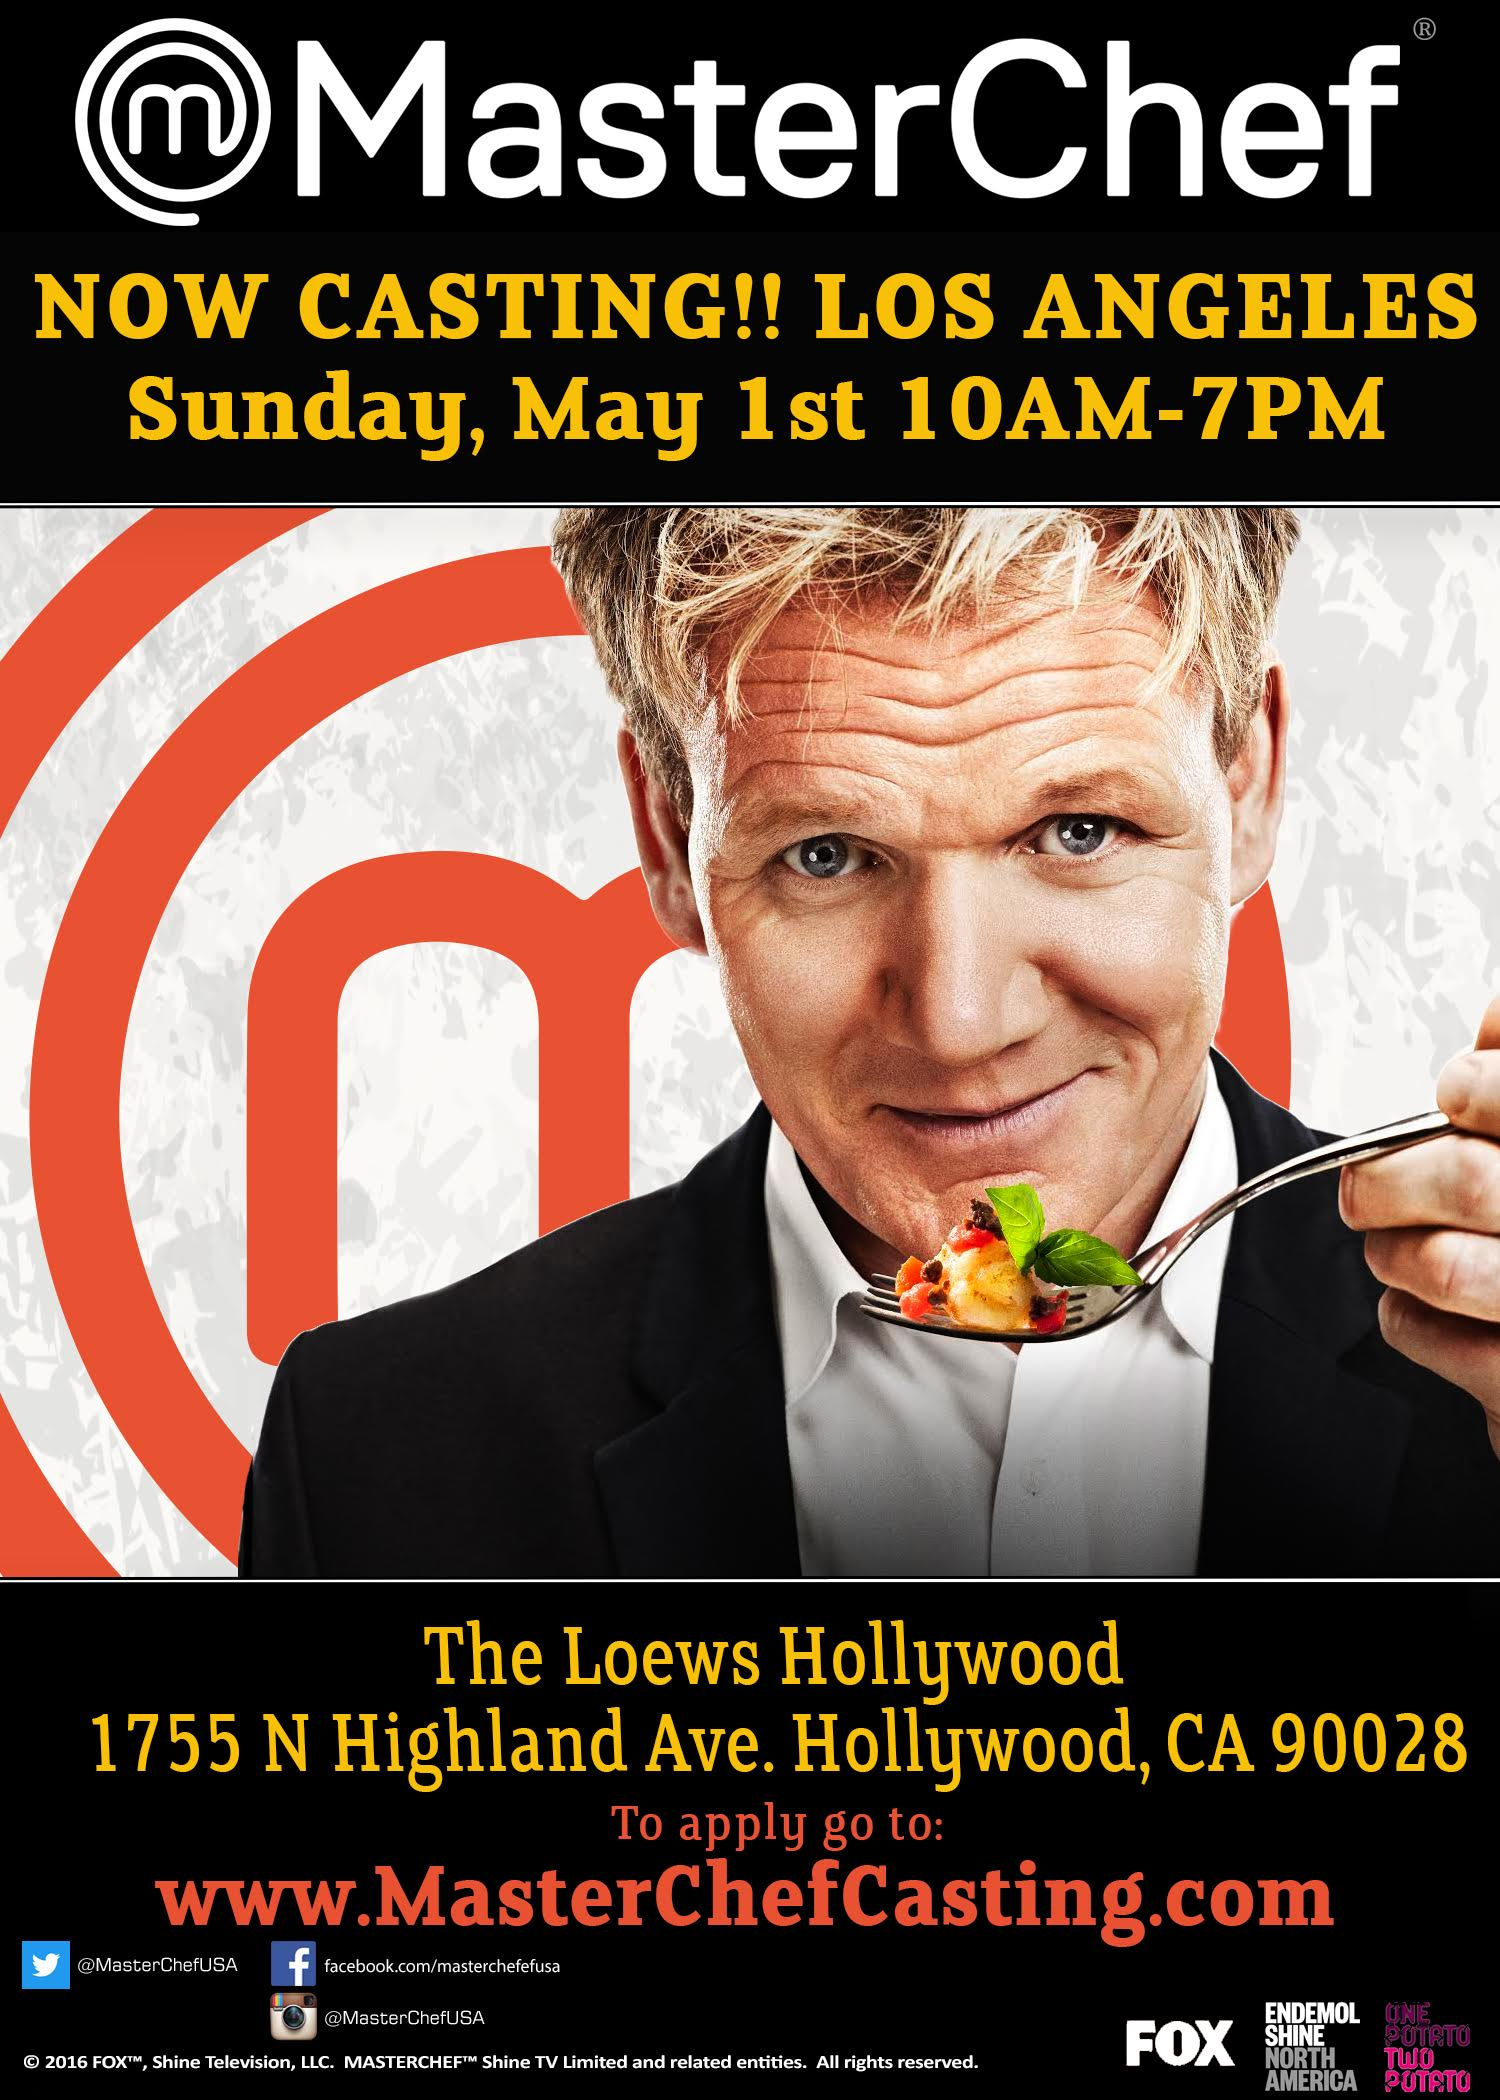 fox's masterchef is on a national talent search and holding open